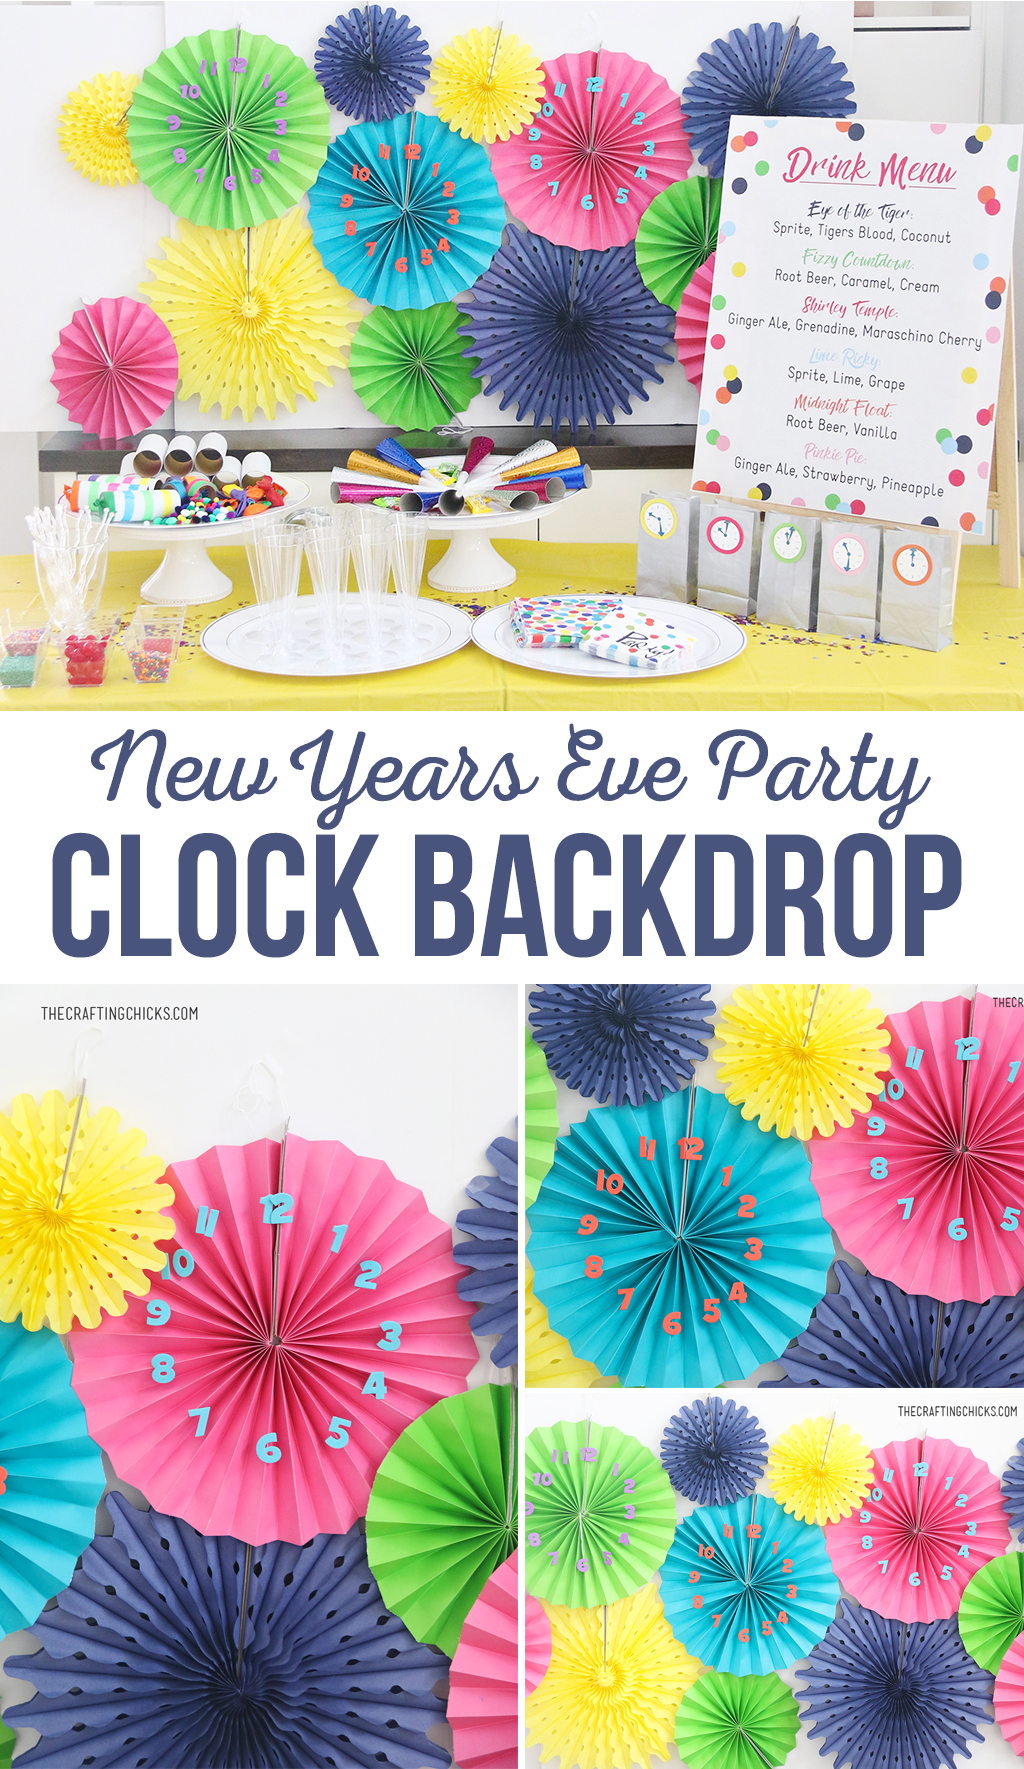 DIY New Year's Eve Party Backdrop